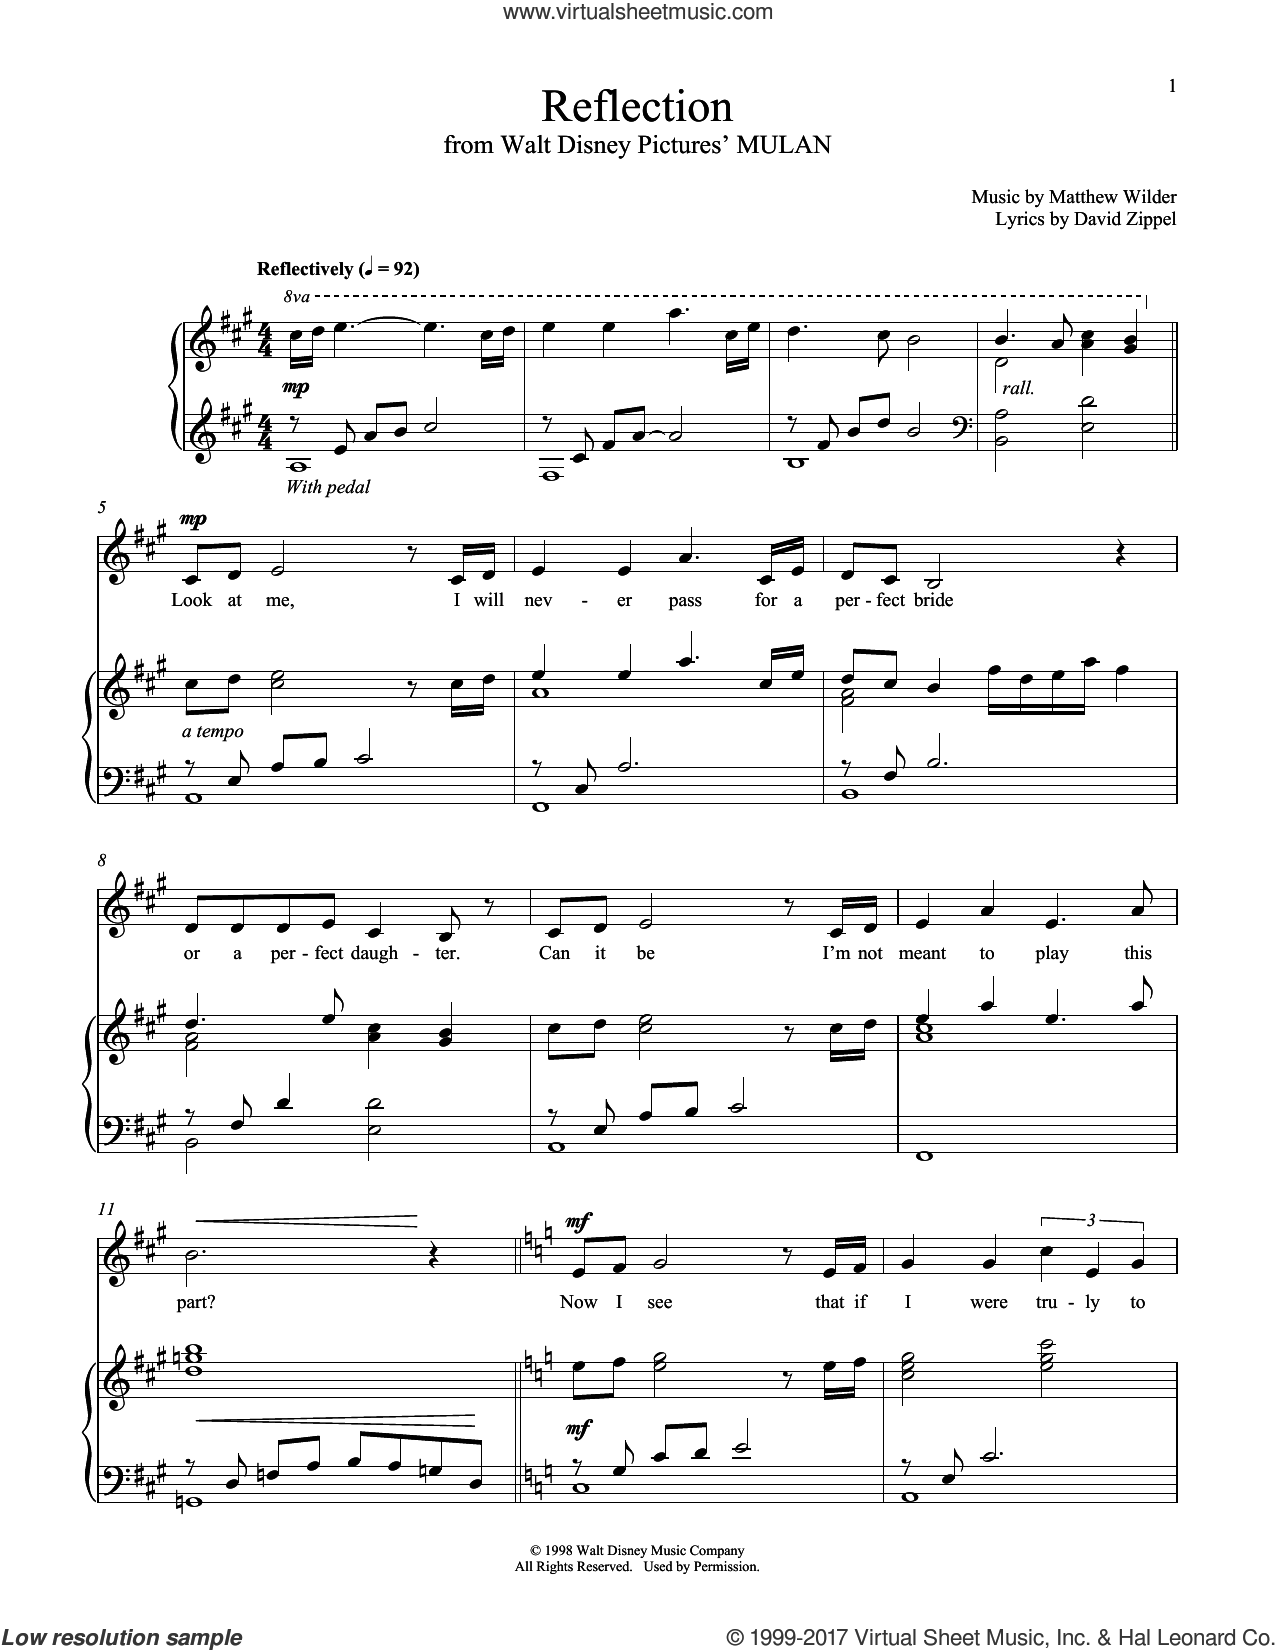 Reflection (from Mulan) sheet music for voice and piano by Christina Aguilera, David Zippel and Matthew Wilder, intermediate skill level